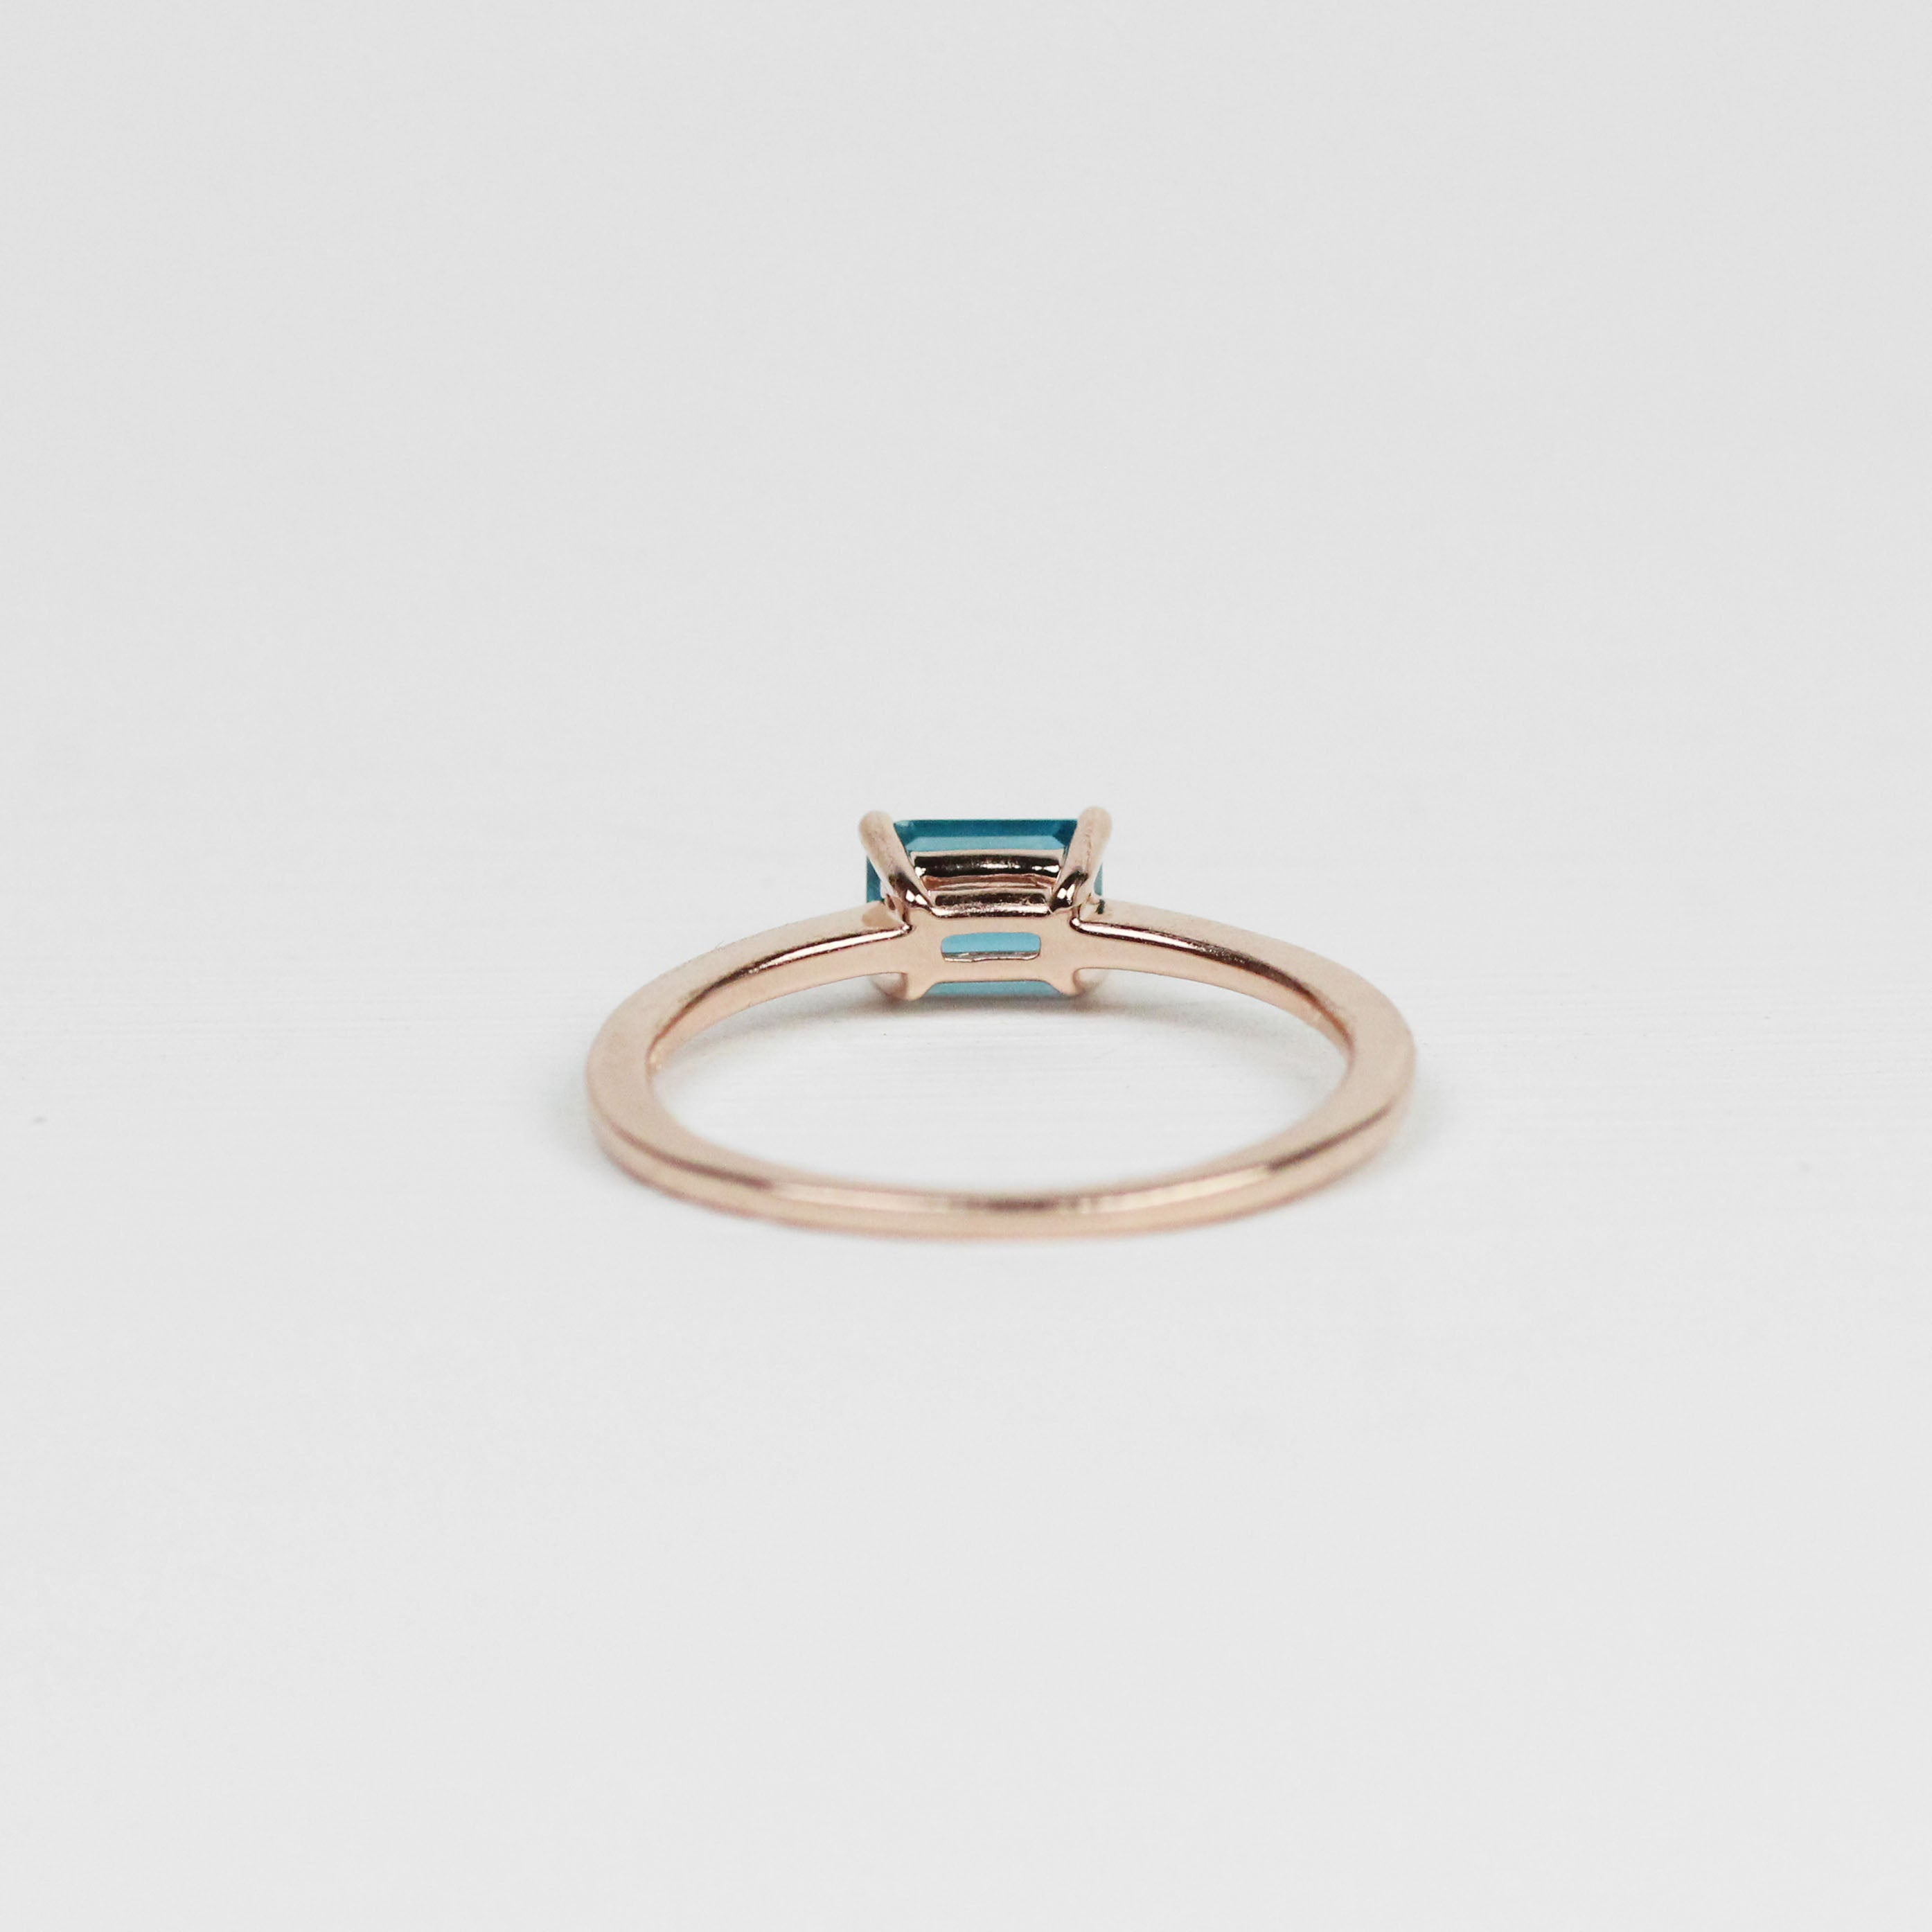 Ruthie Ring with London Blue Topaz - Your choice of metal - Custom